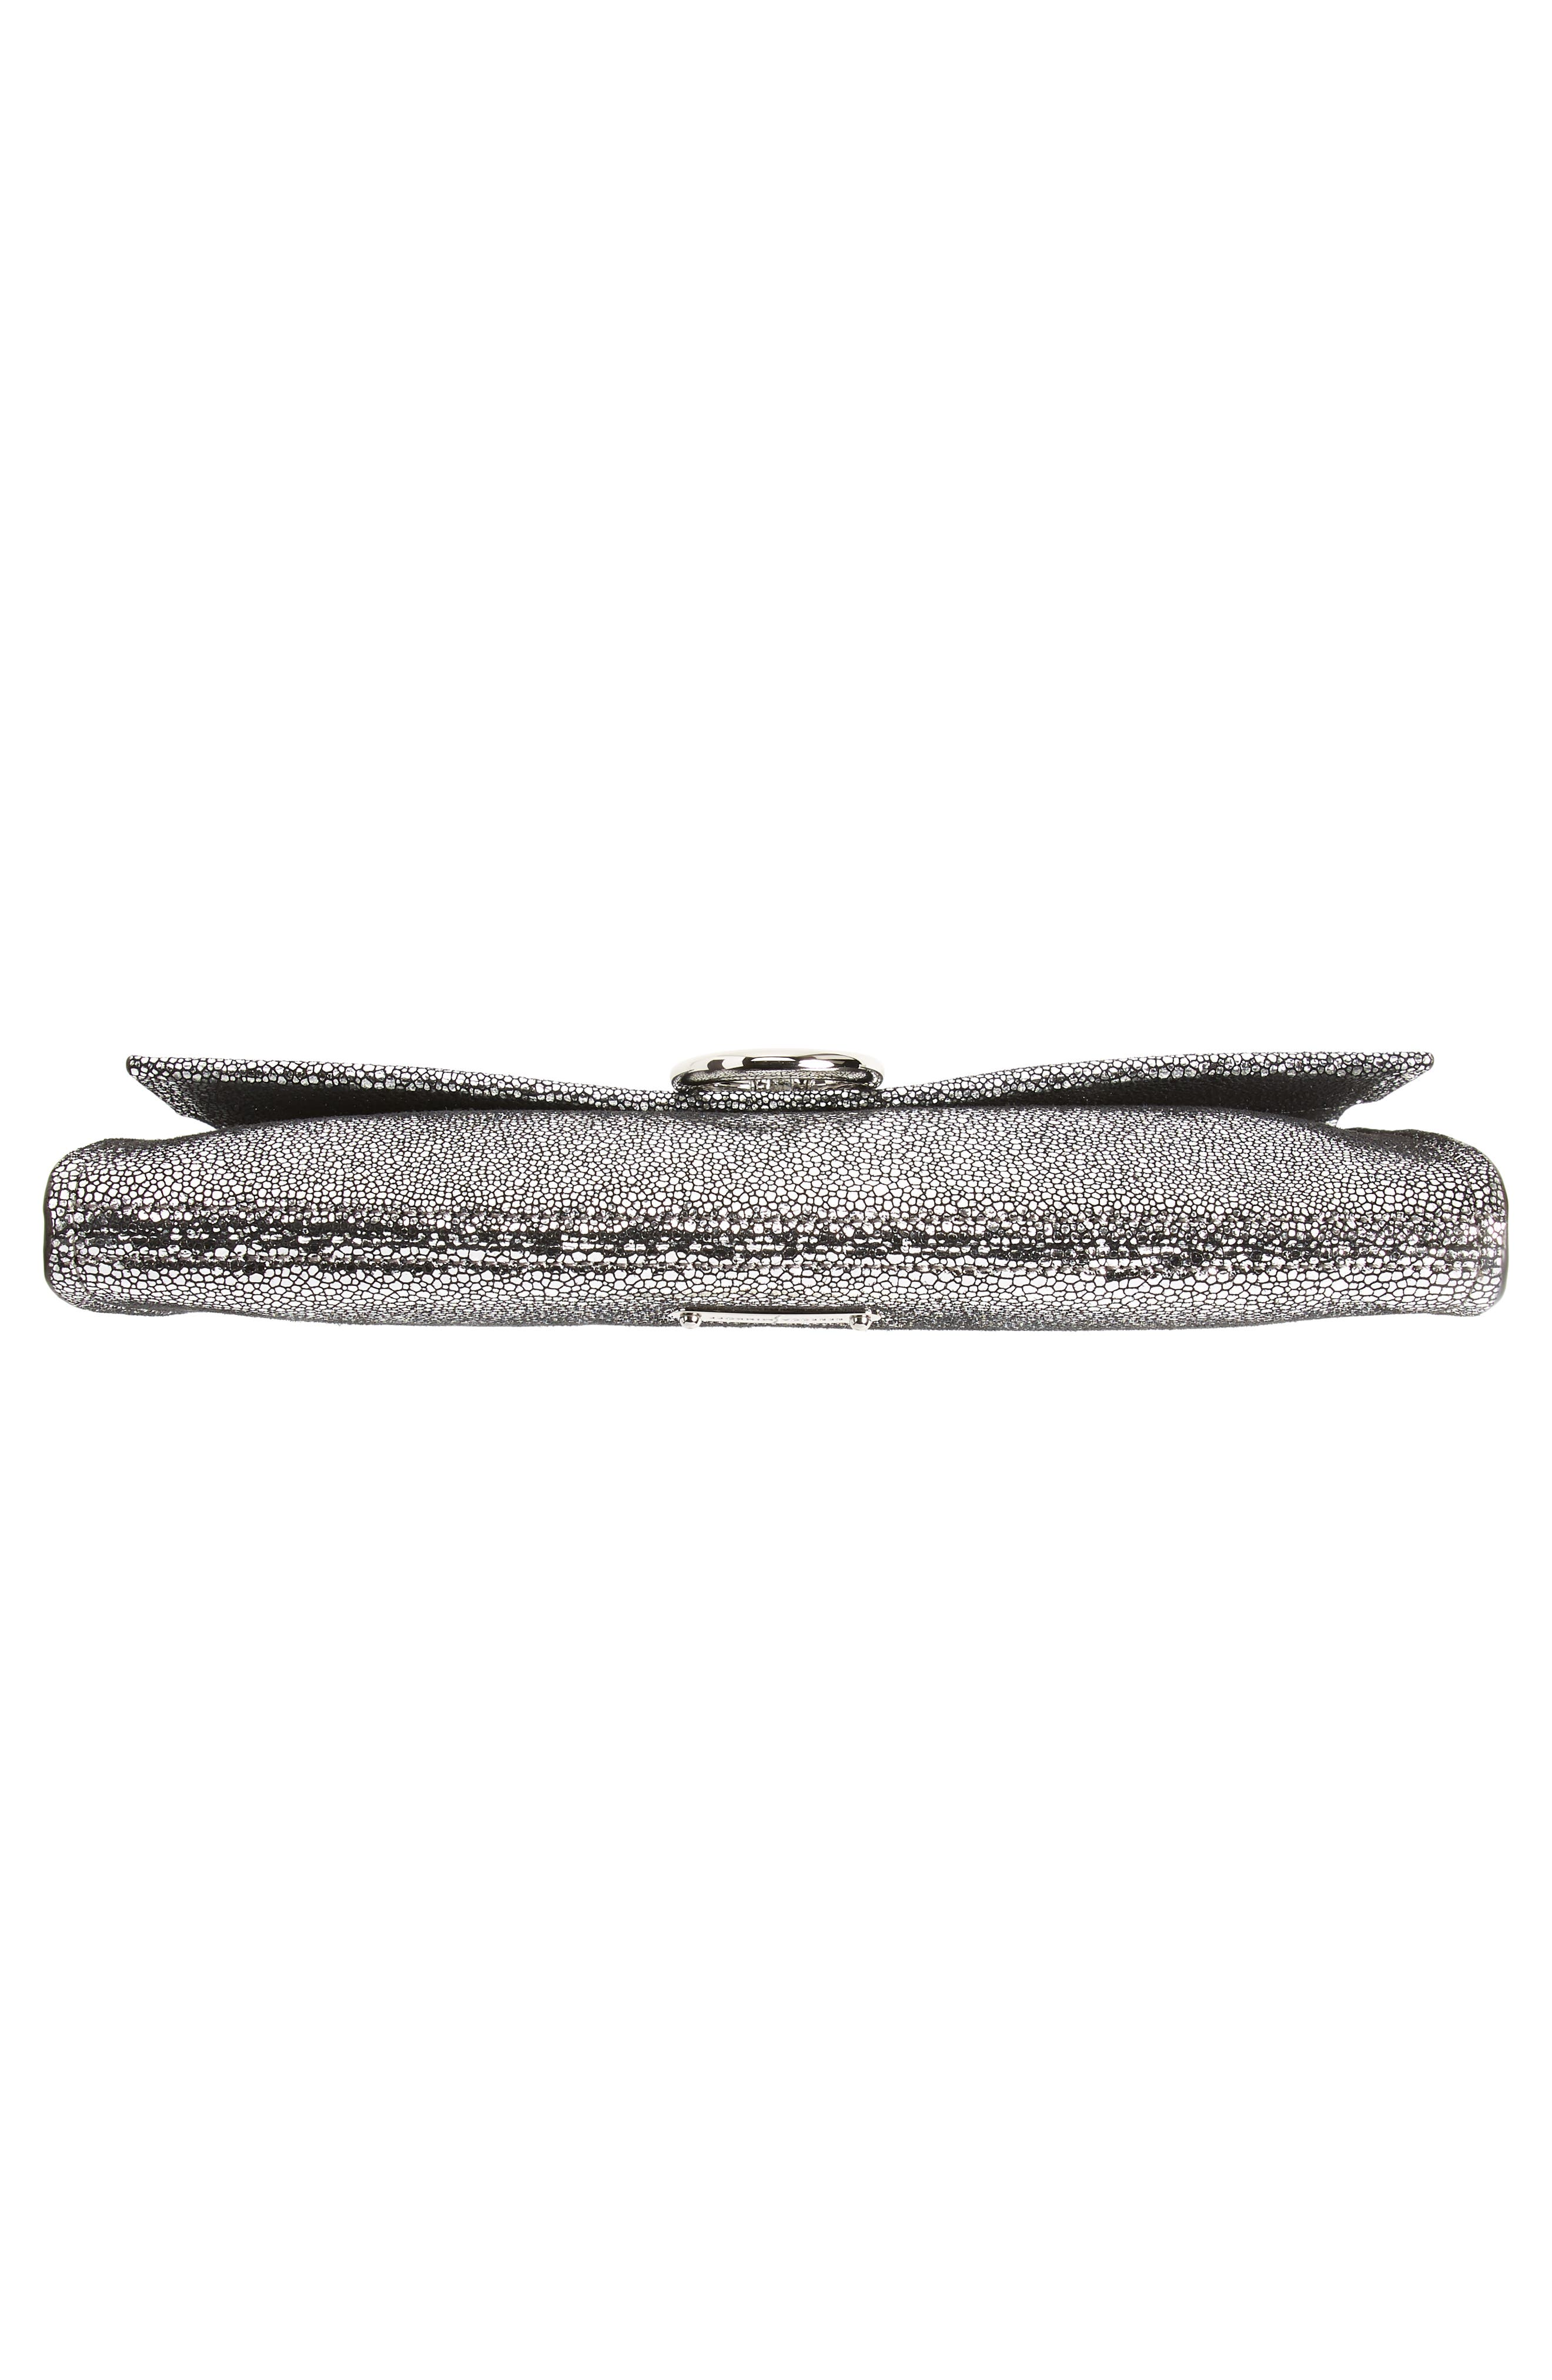 Jean Metallic Leather Clutch,                             Alternate thumbnail 6, color,                             SILVER